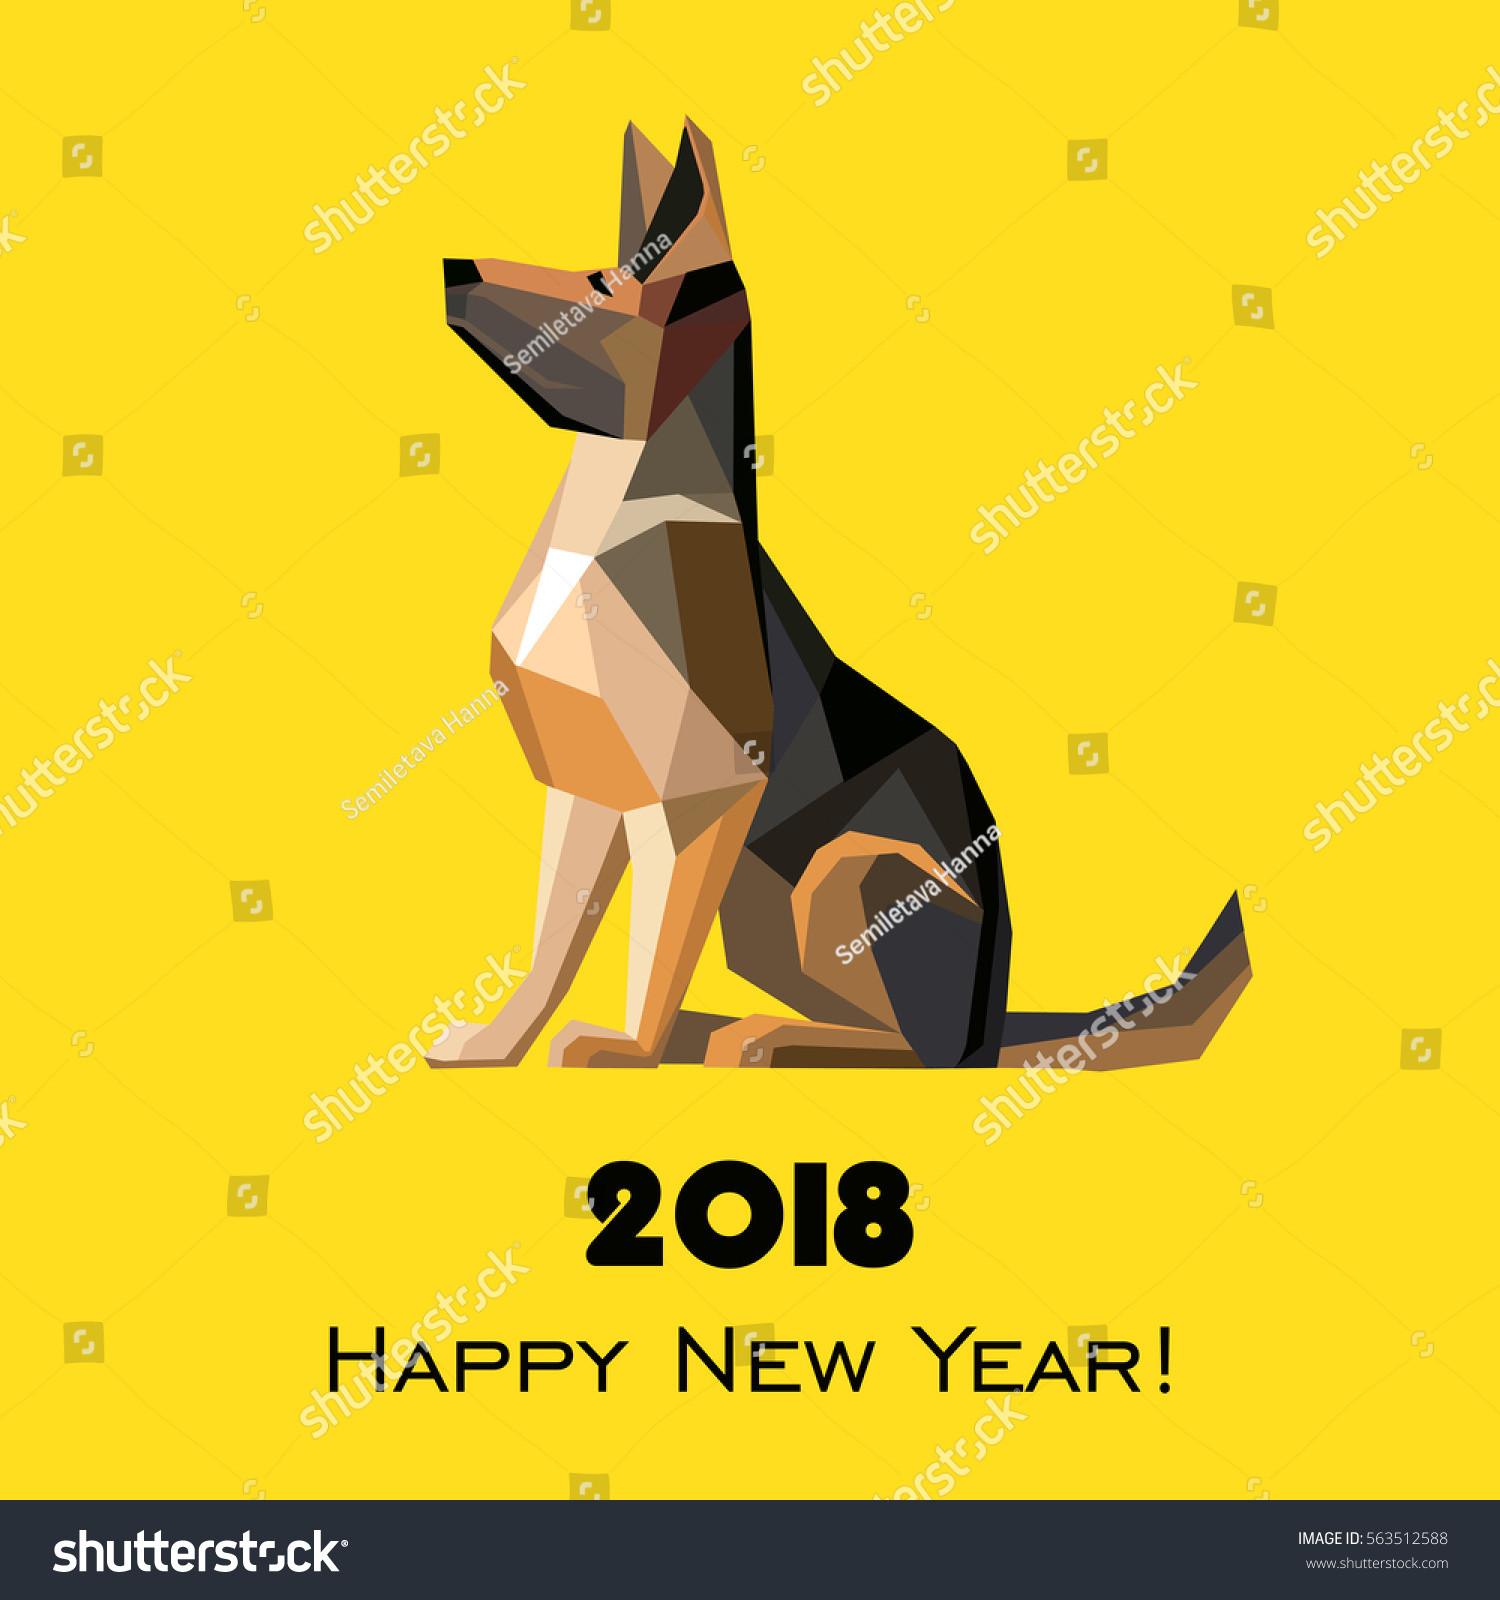 2018 Happy New Year Greeting Card Stock Vector 563512588 - Shutterstock